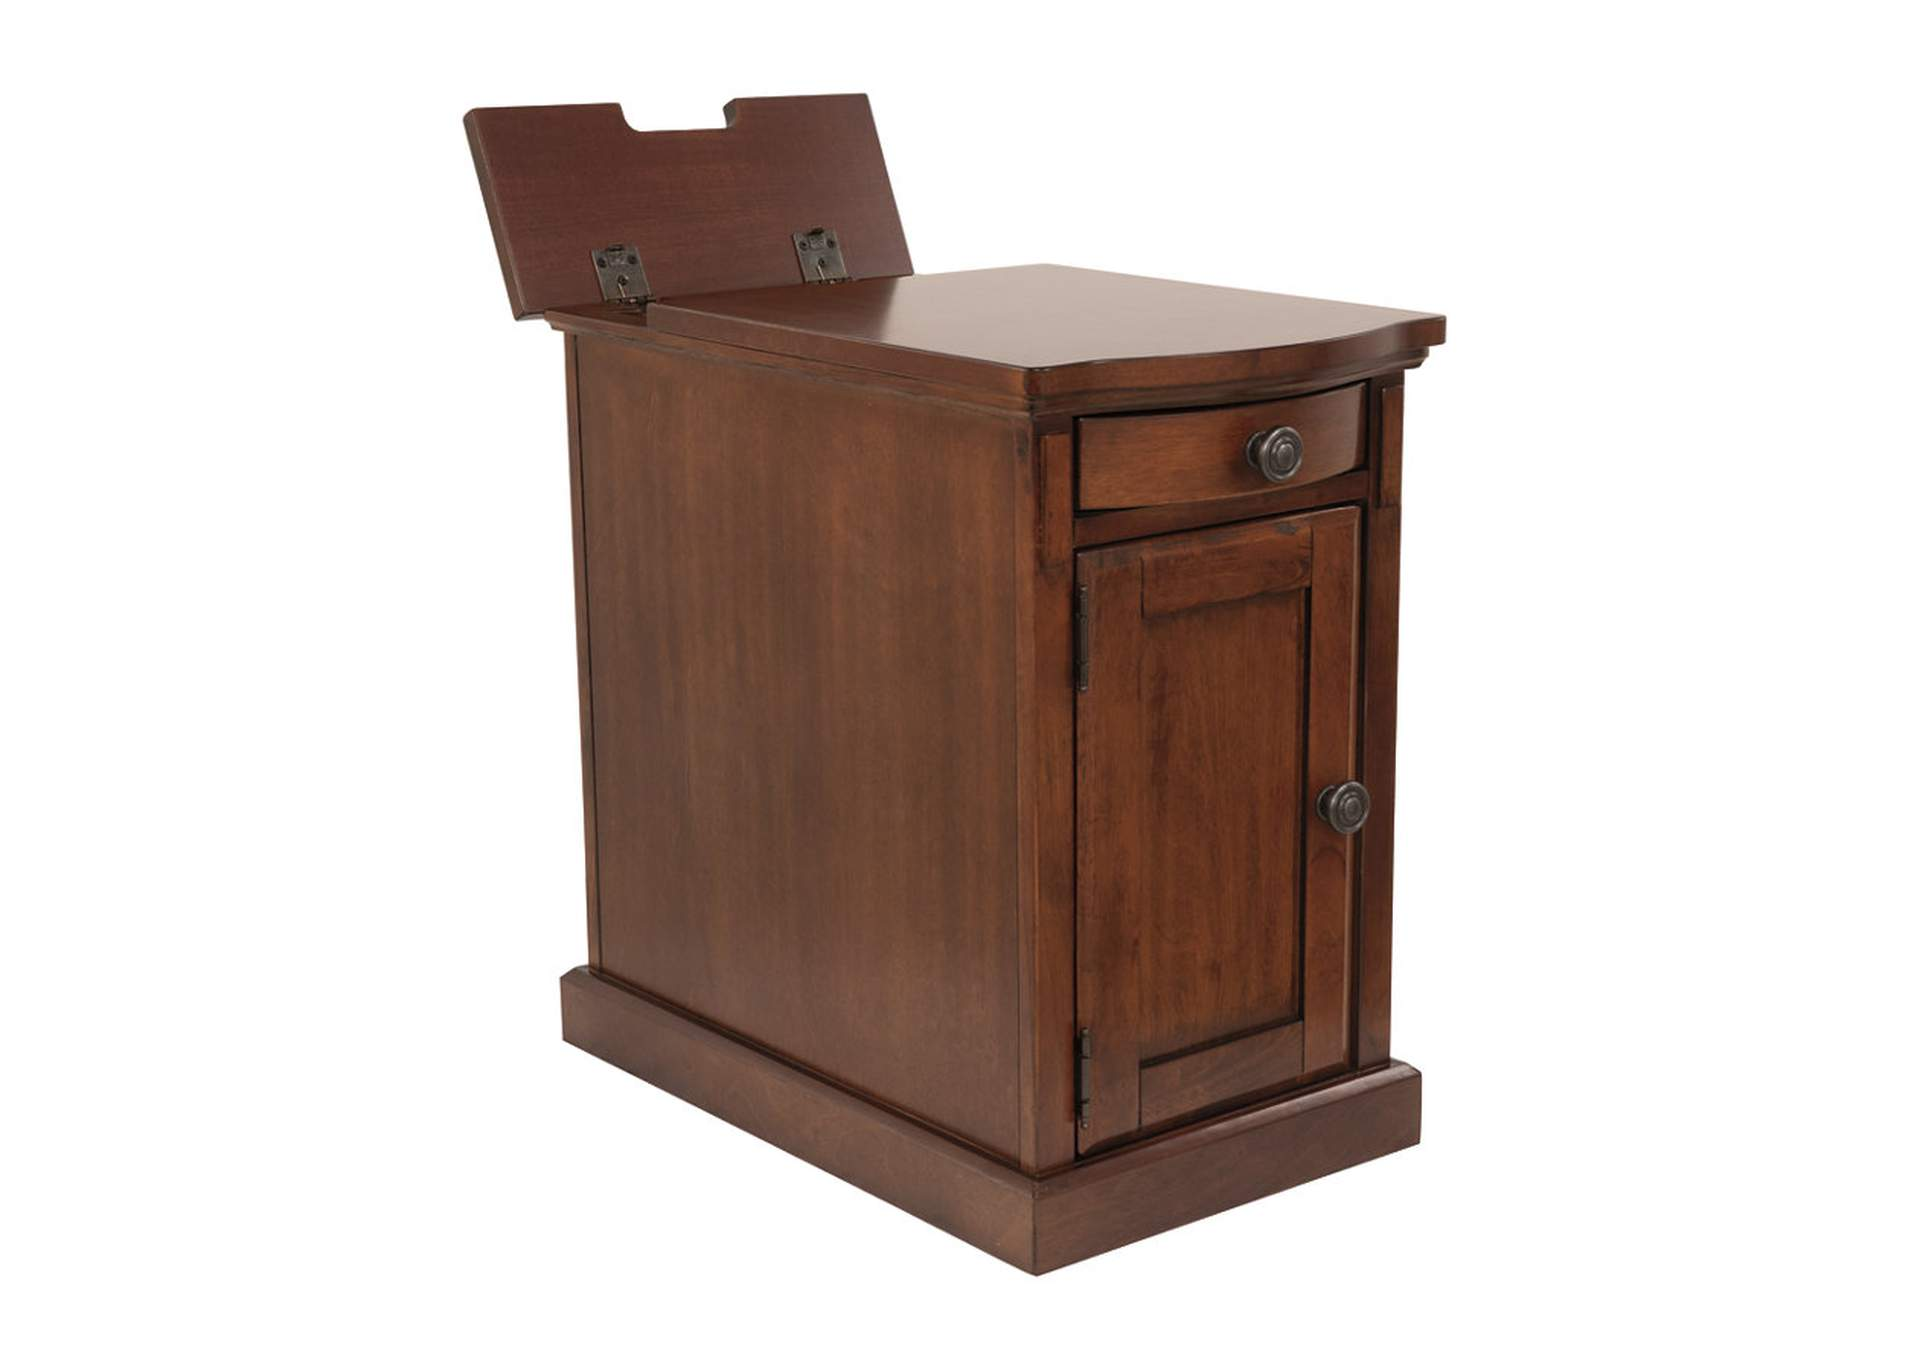 Medium Brown Power Chairside End Table,Direct To Consumer Express